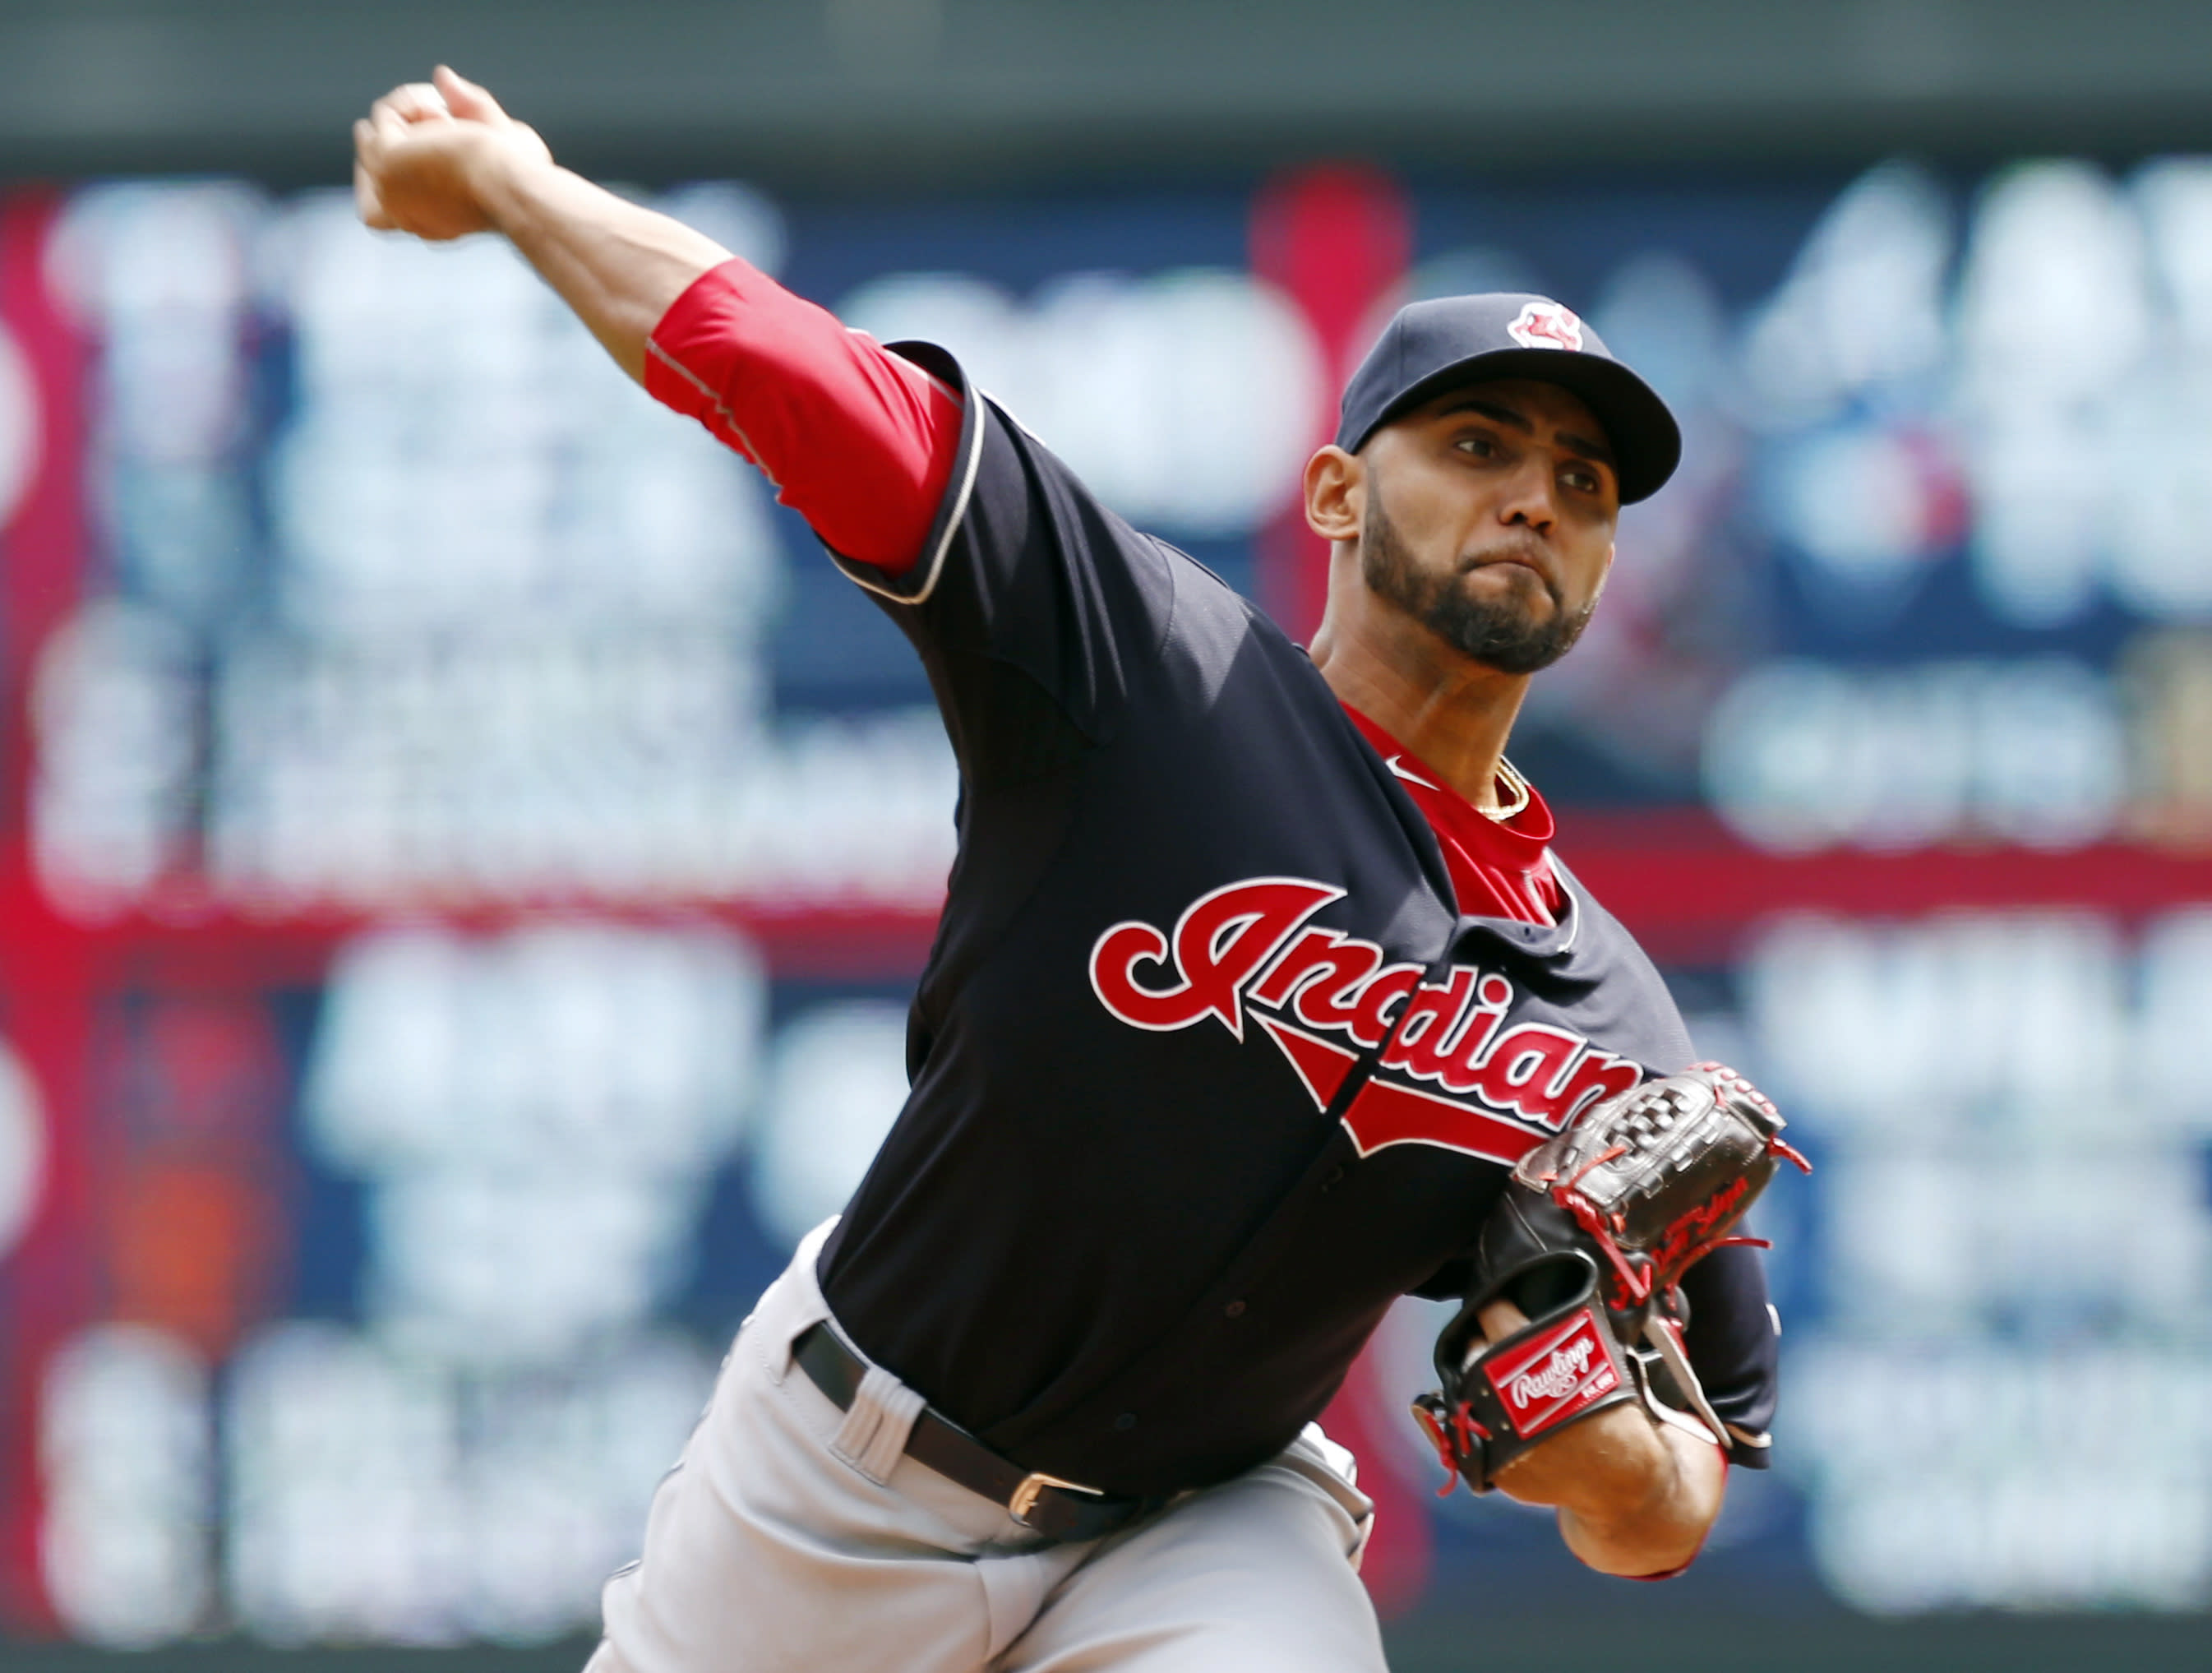 With sparkling season debut by Salazar, Indians top Twins